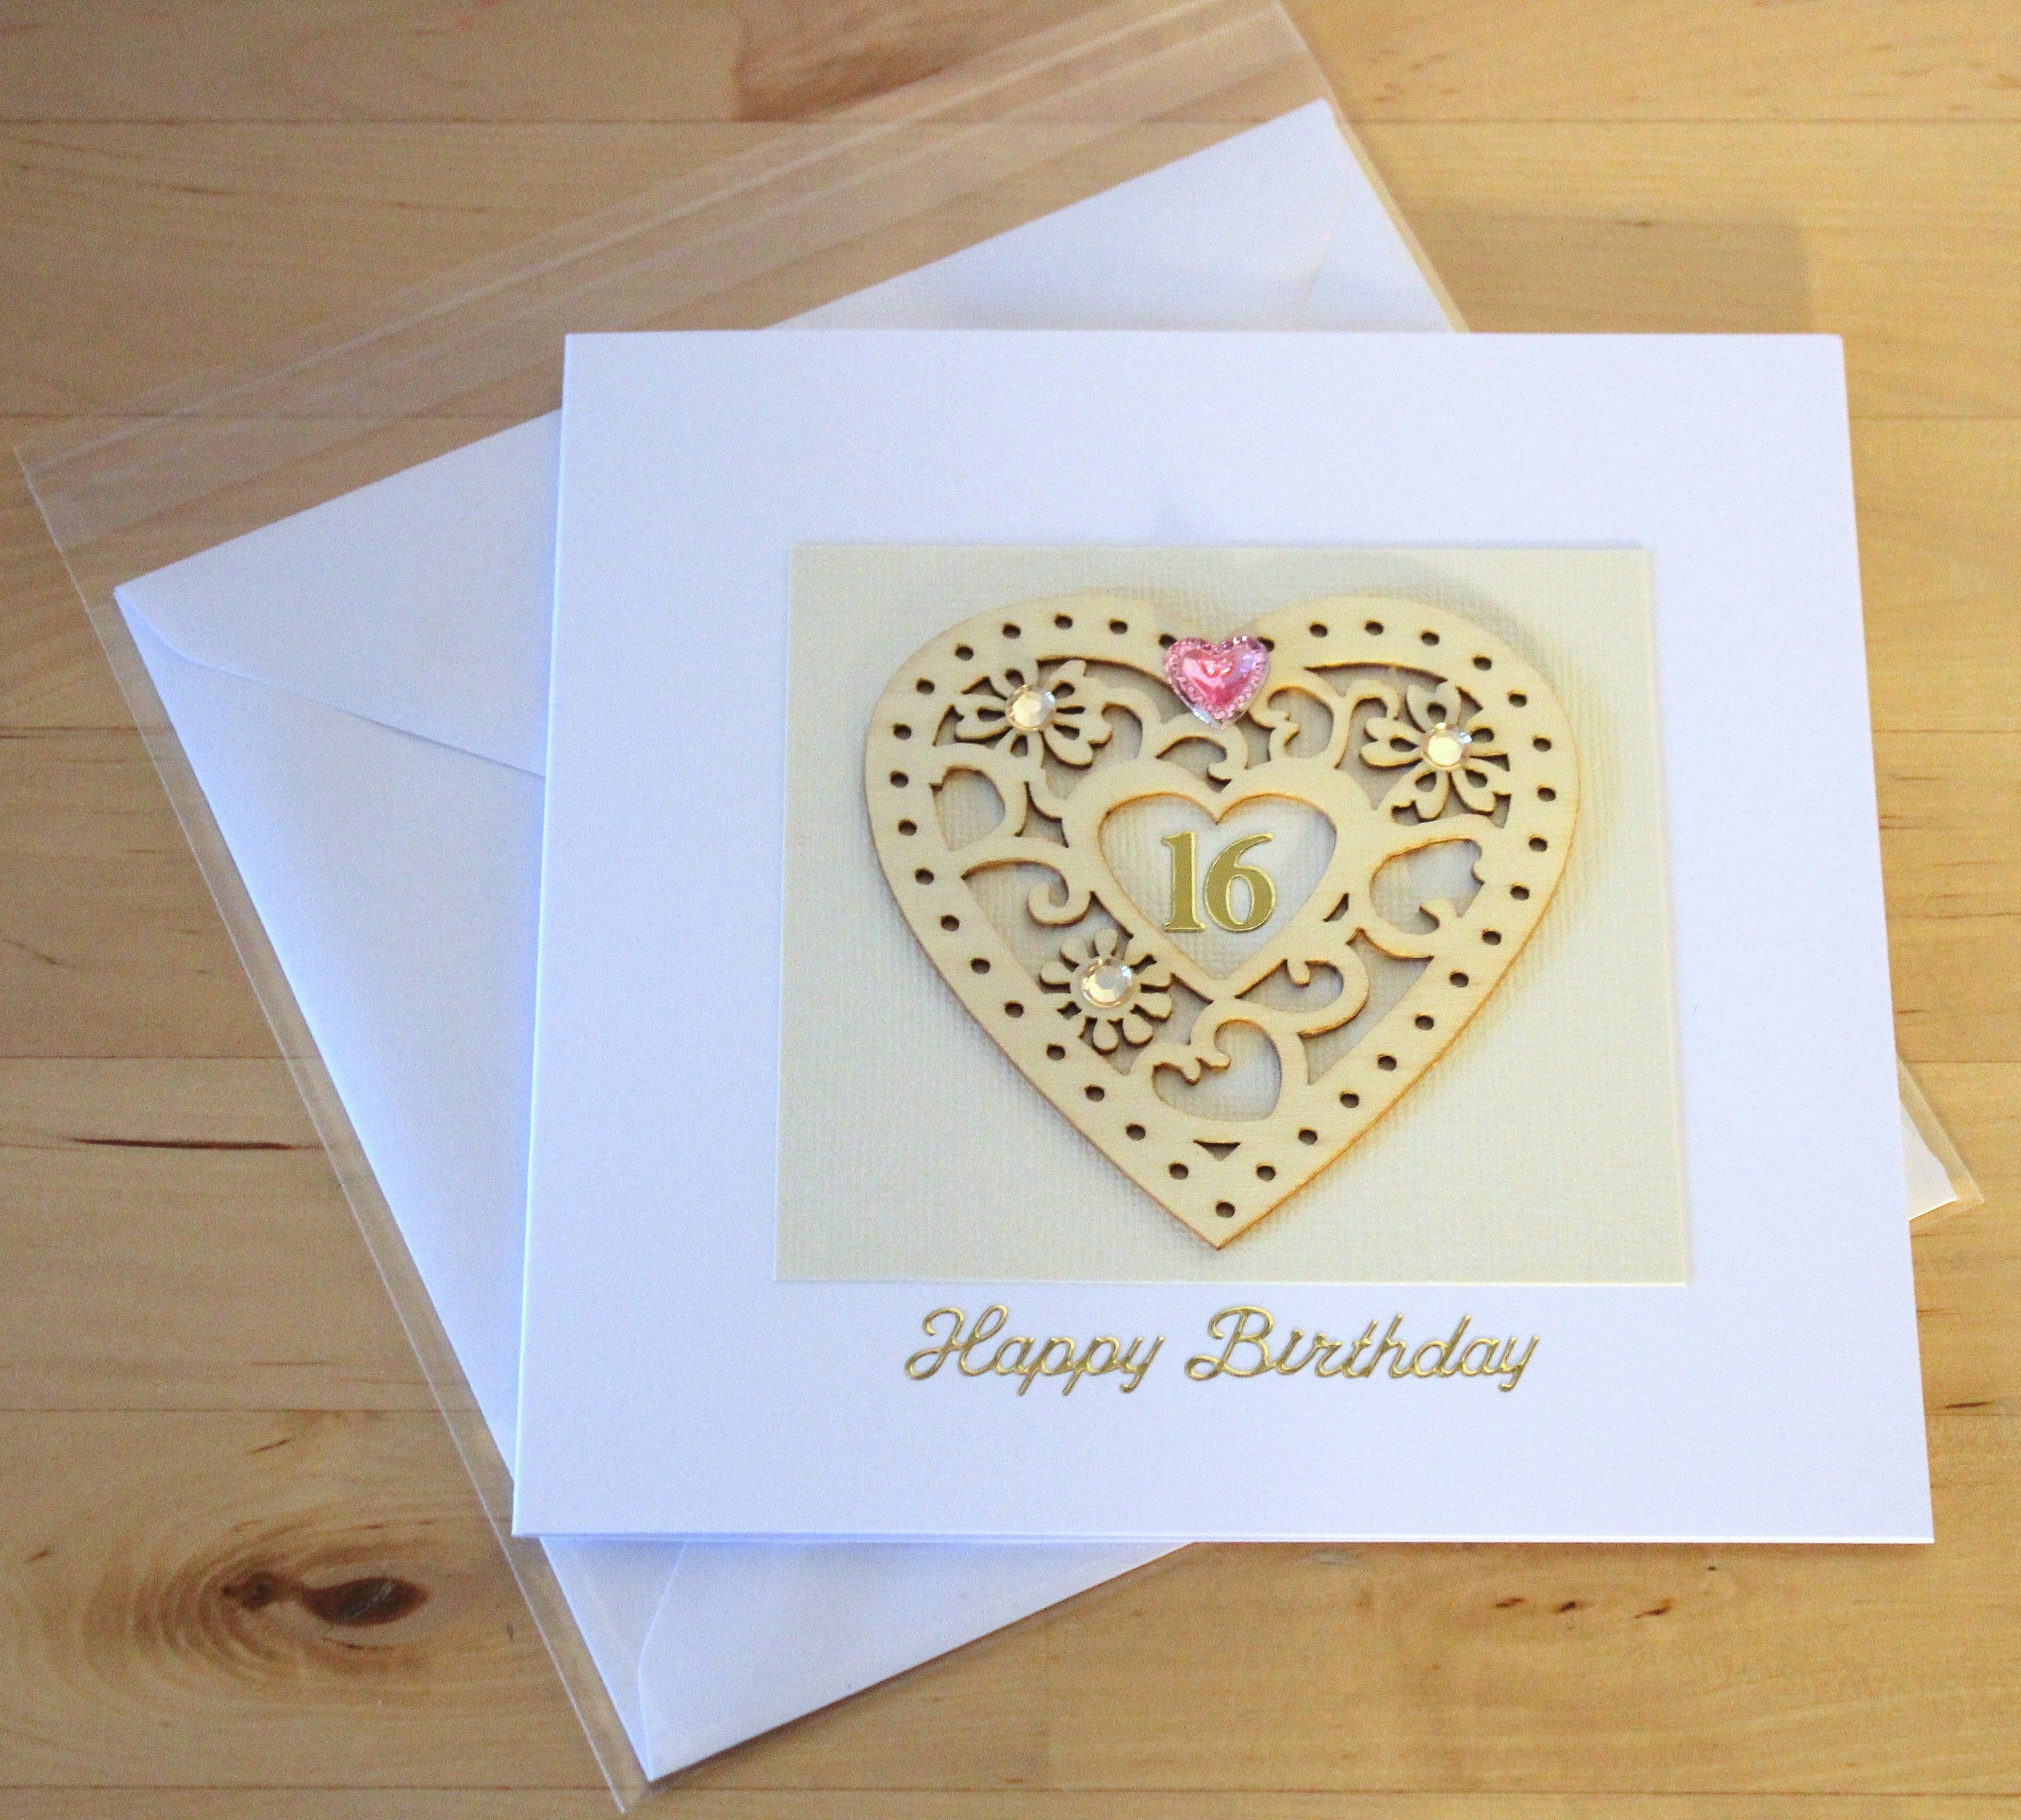 16th Birthday Card Gift Luxury Unique 16th Birthday Card Etsy 16th Birthday Card Birthday Cards Birthday Stickers